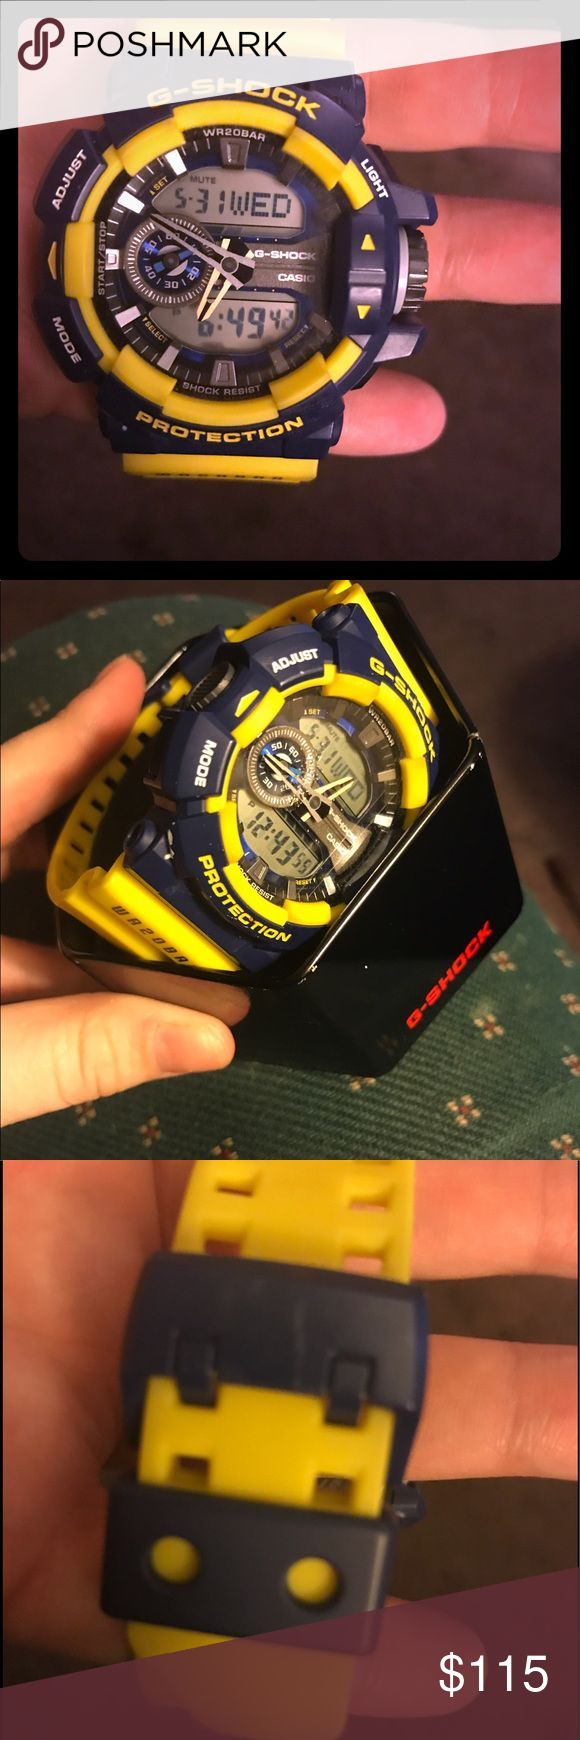 G-Shock Watch Warriors Colors G-Shock Watch Rare Item Excellent Condition G-Shock Accessories Watches